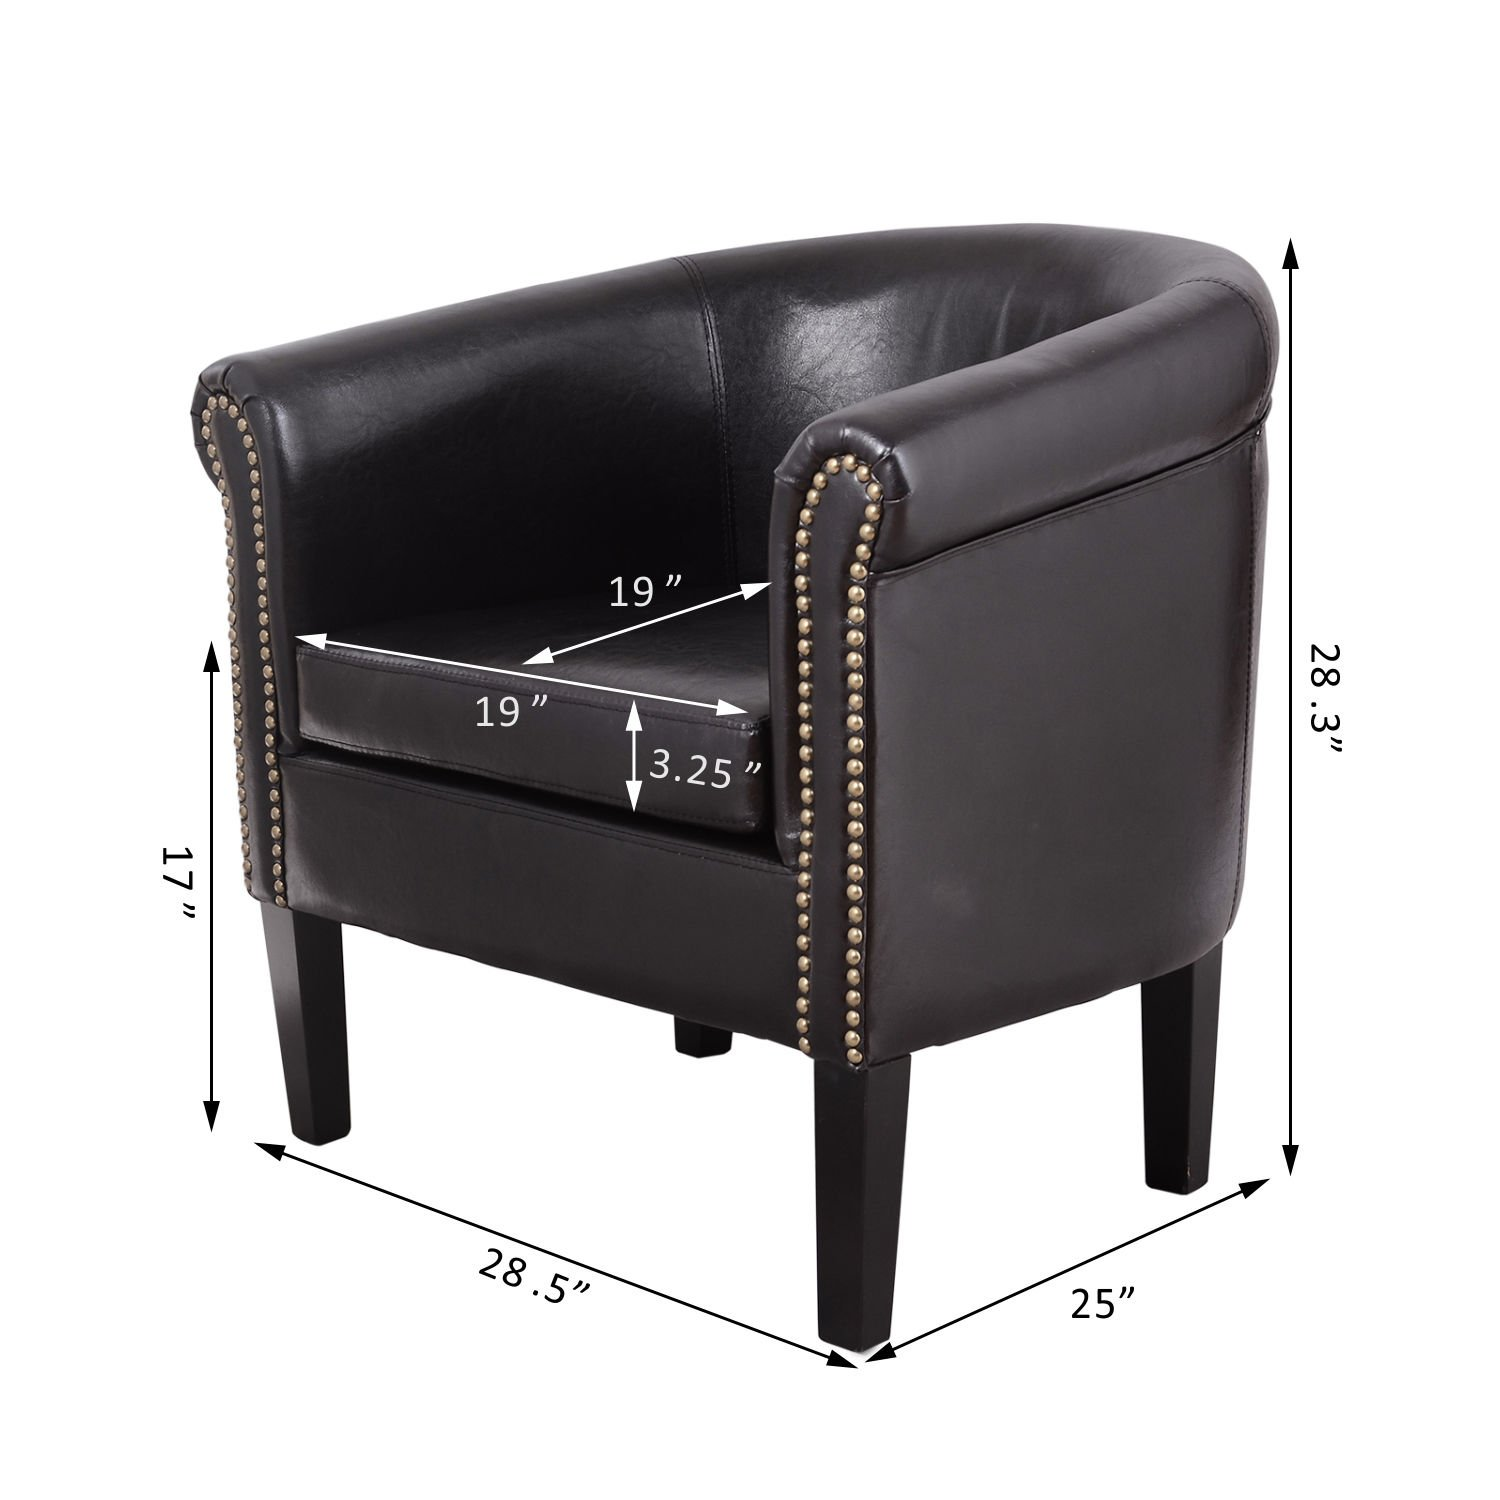 PU Leather Tub Club Barrel Design Chair Room Seat Contemporary ArmChair - Black + FREE E-Book